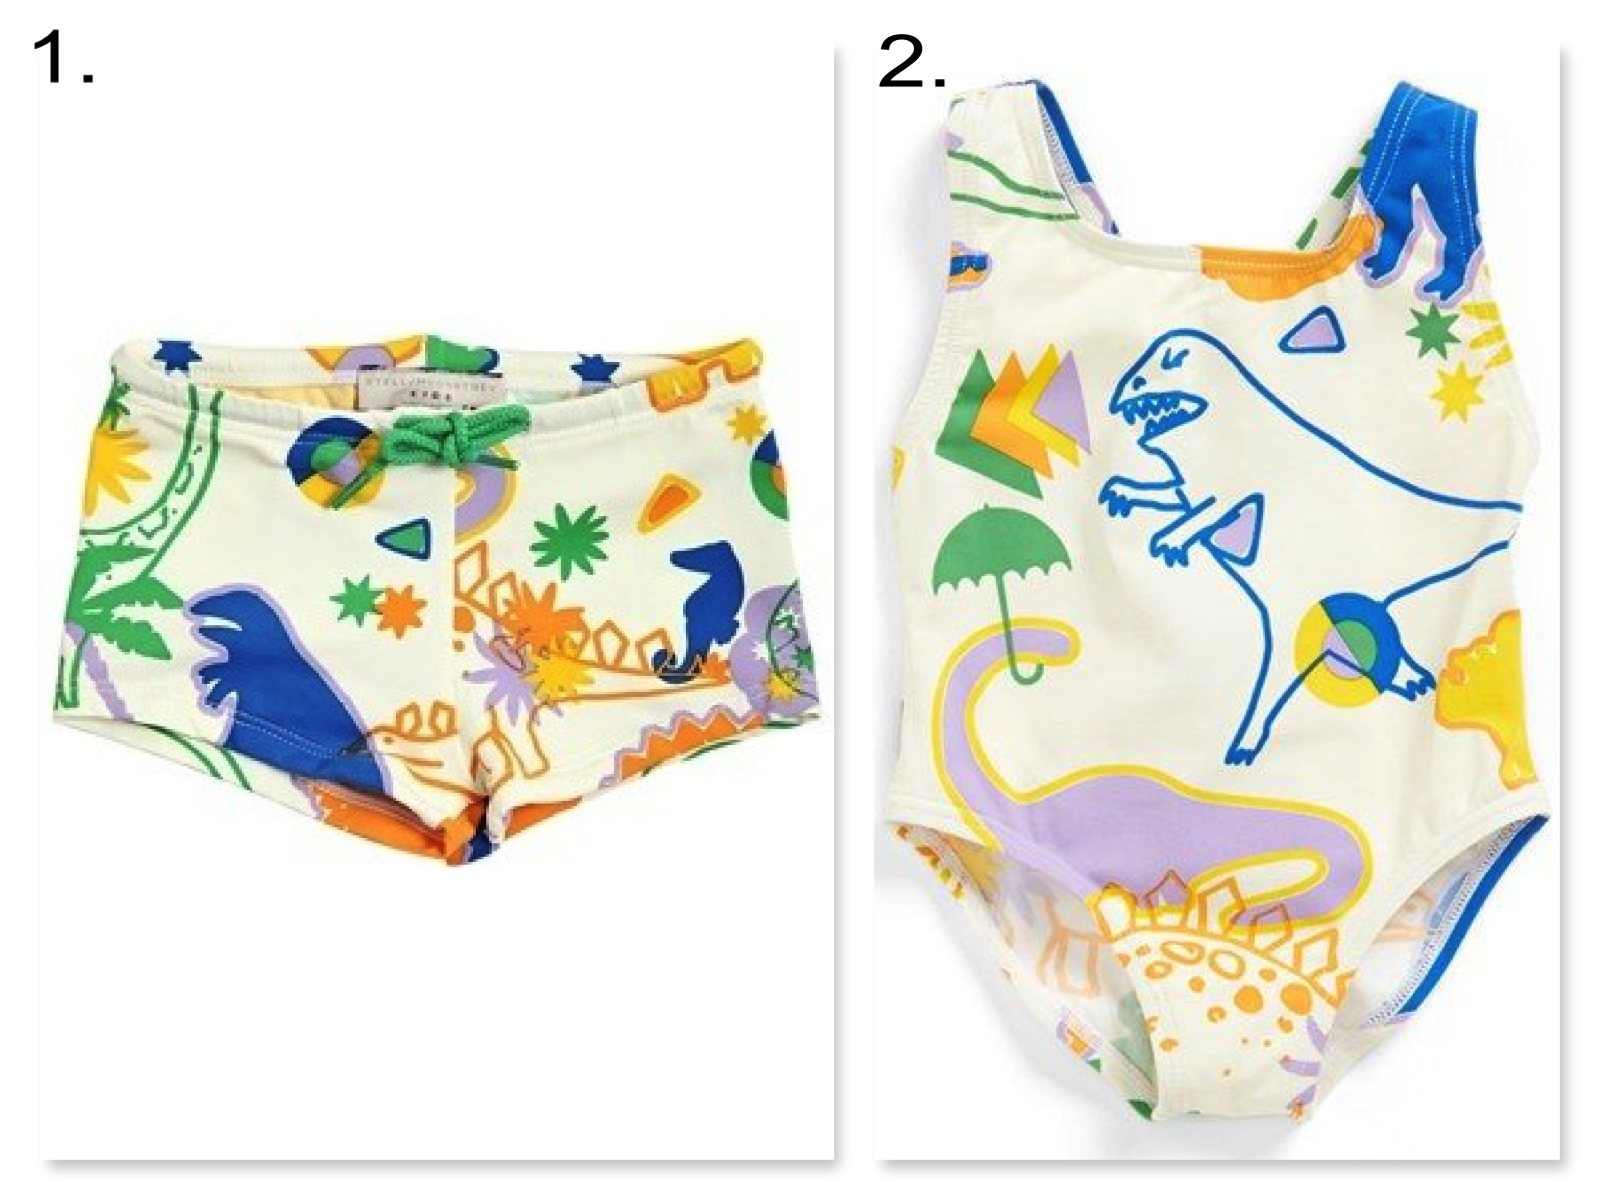 Your little ones will look and stay cool in these matching dinosaur print Swimsuits.   1. STELLA MCCARTNEY KIDS DINOSAUR PRINTED SWIM SHORTS  | 2. Stella McCartney Kids 'Imogen' One-Piece Swimsuit